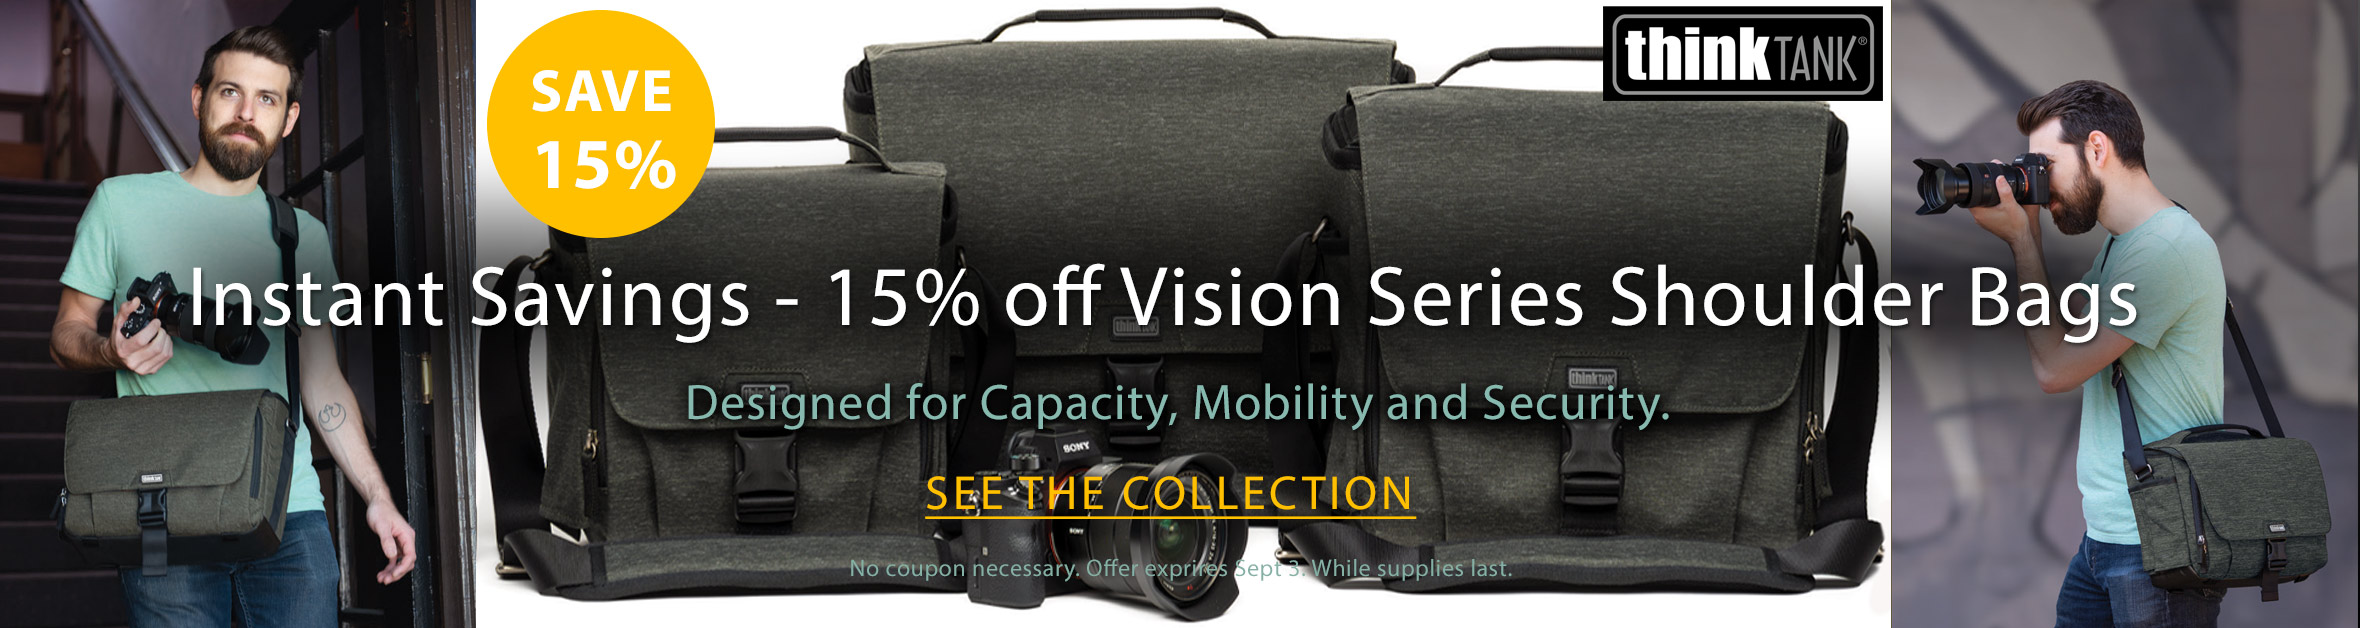 Save 15% instantly on Think Tank Vision Series Bags. Shop the vision series now>